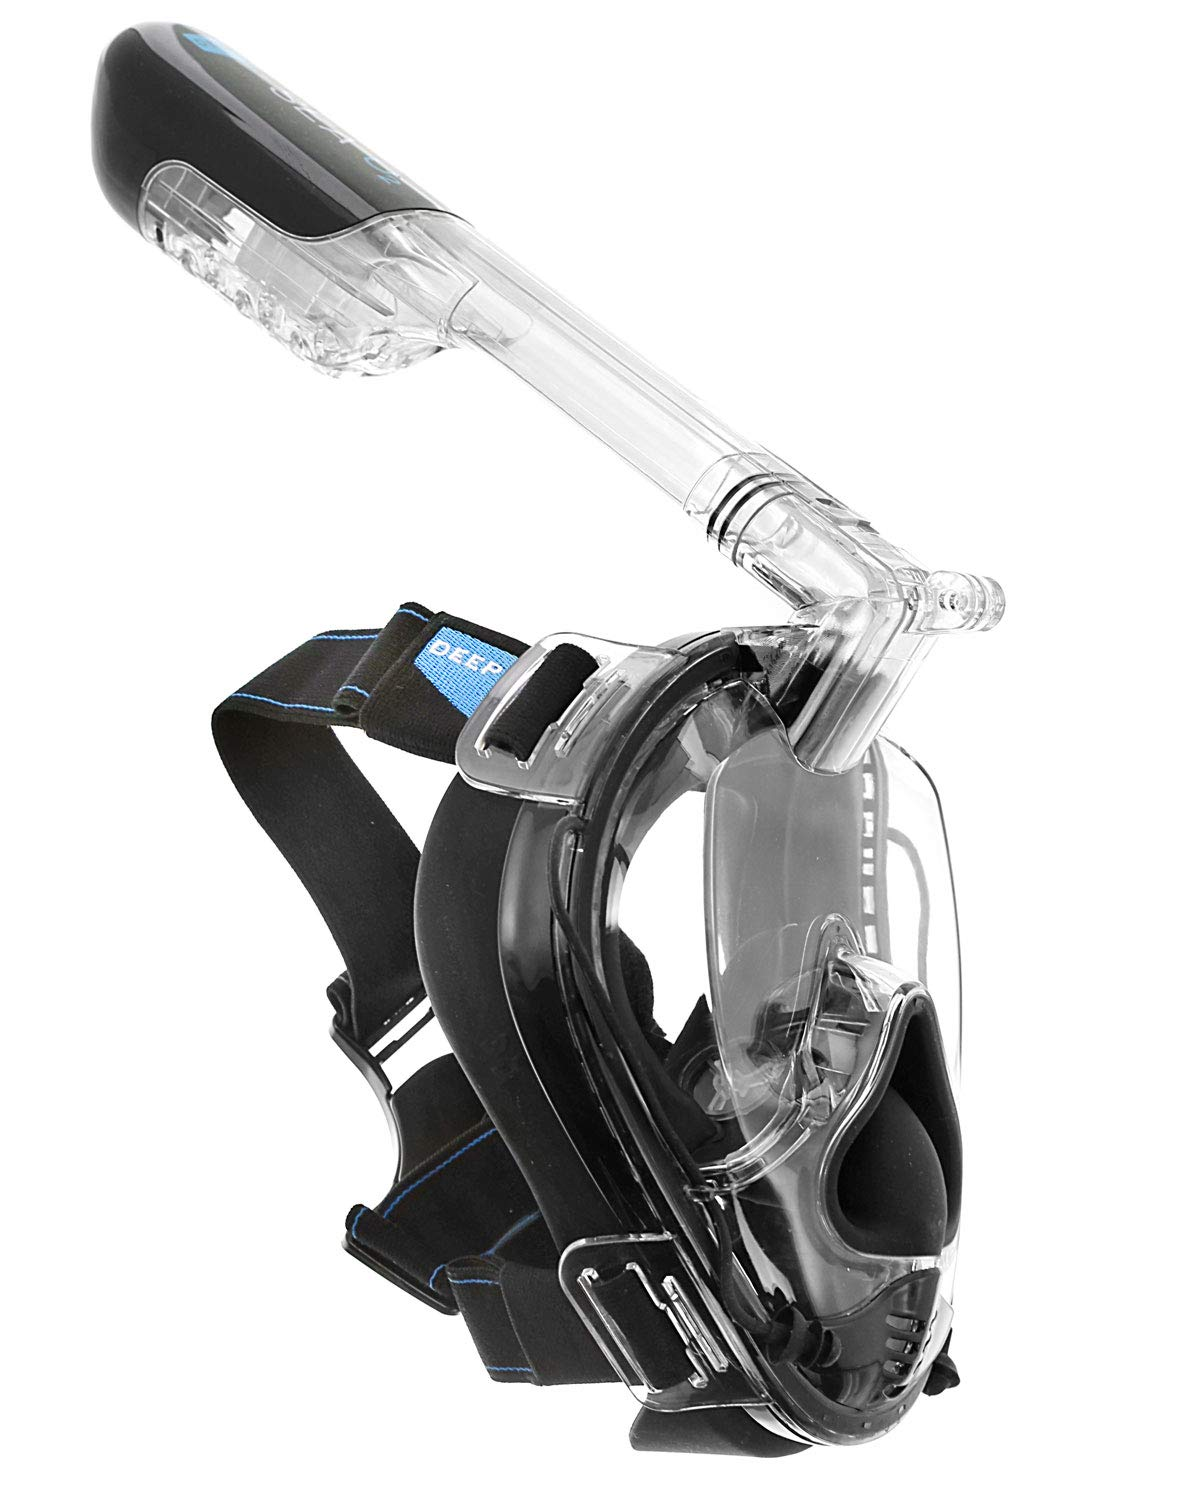 Deep Sea O2 | Only Full Face Snorkel Mask Designed to Protect Against Dangerous CO2 Build-Up | Panoramic View | Soft Nose for Diving | Anti-Fog | Camera Mount | Universal Size- Kids to Adult | Black by Deep